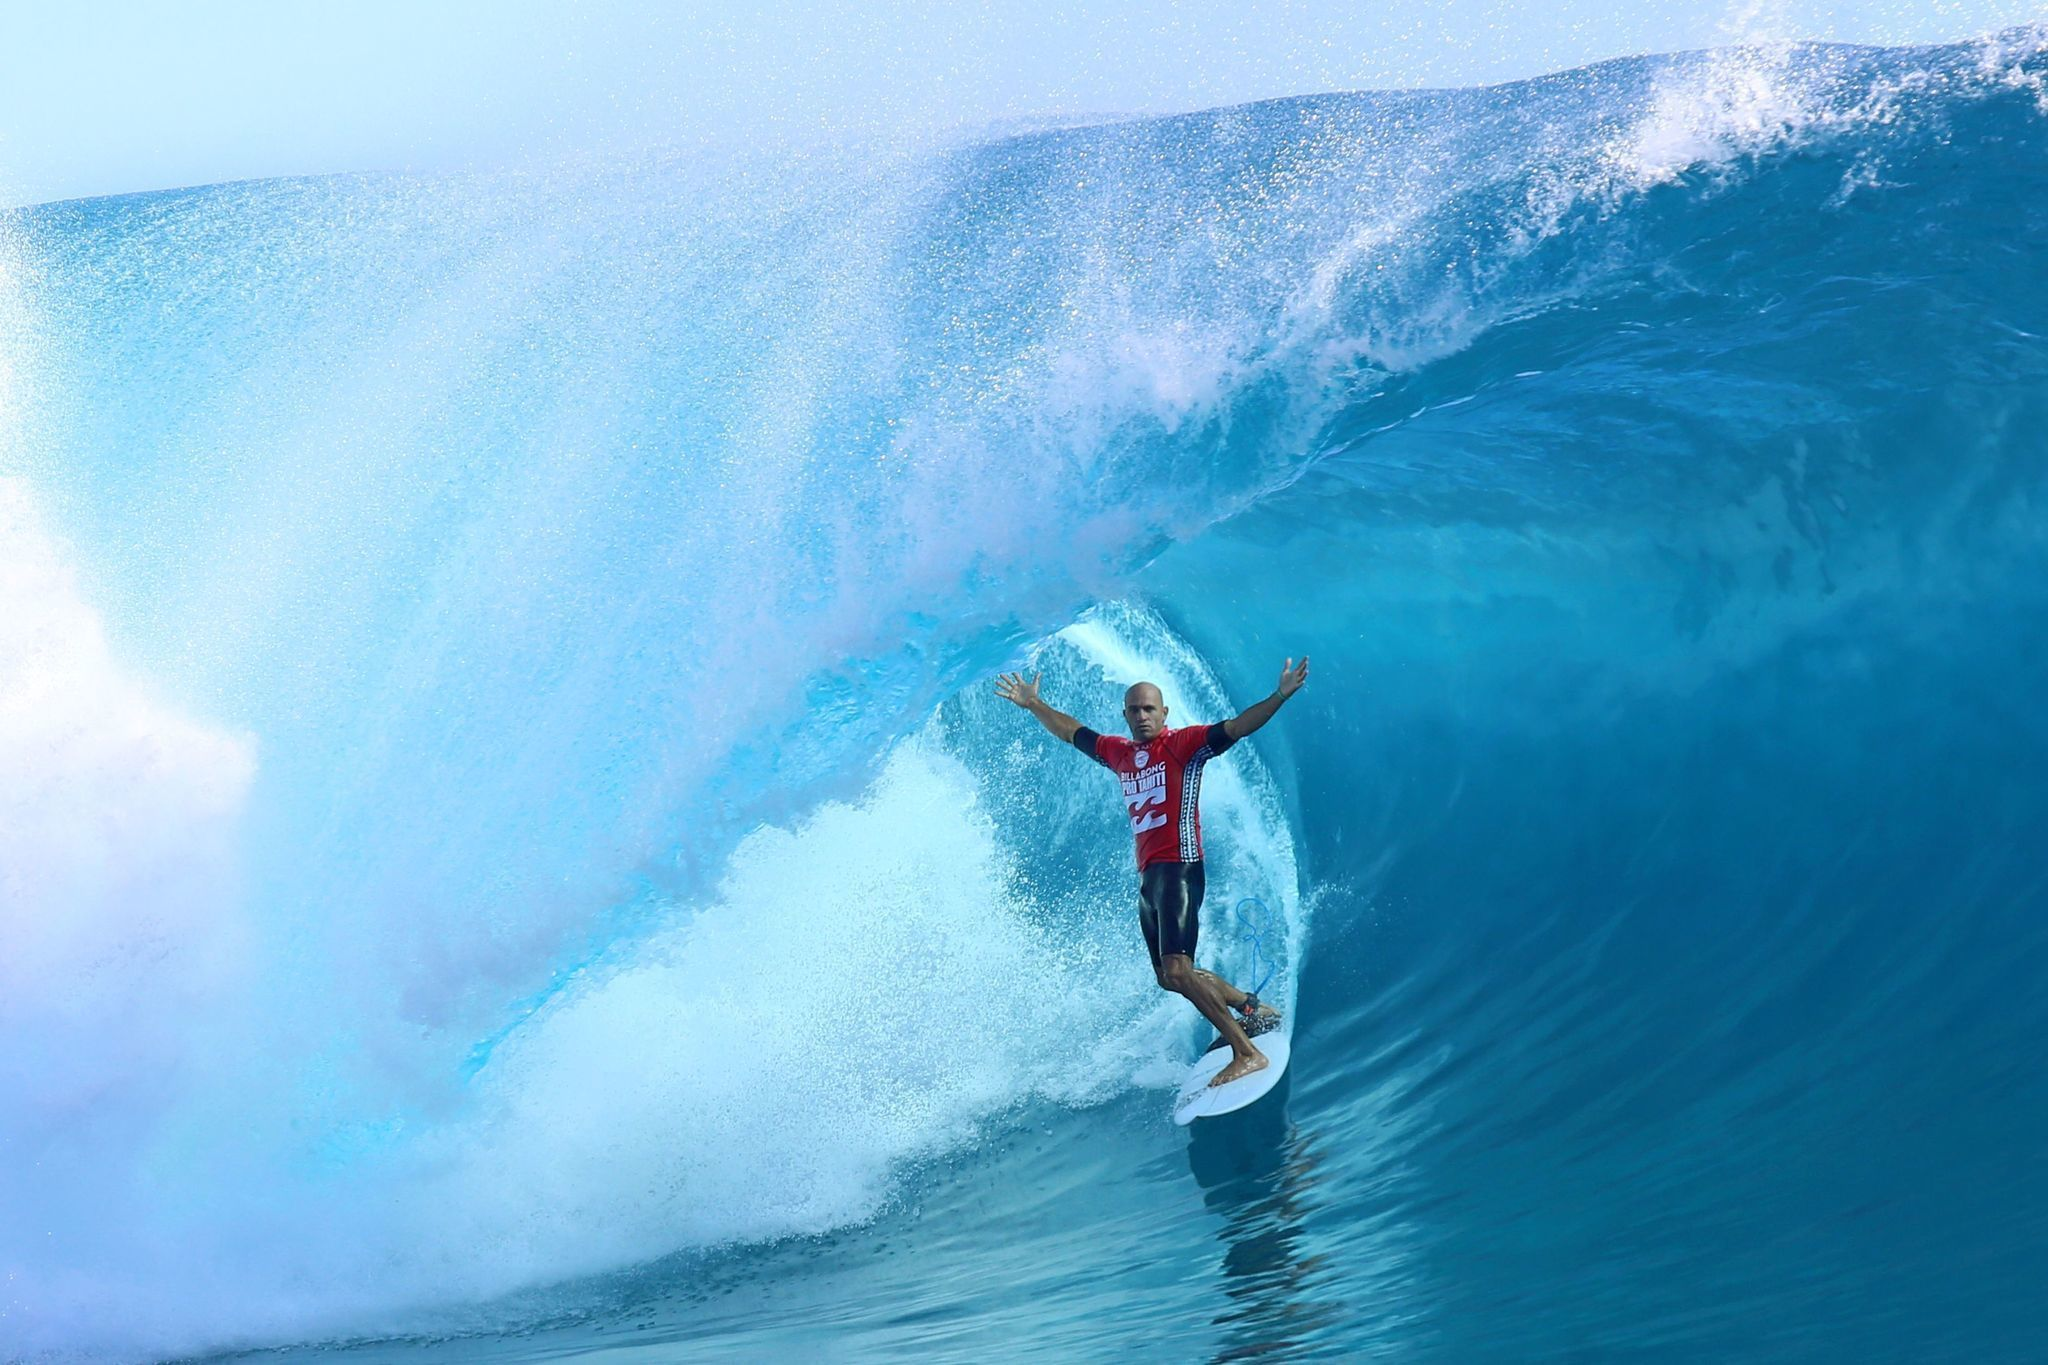 Surf Legend Kelly Slater Aims To Bring Wave Park To Palm